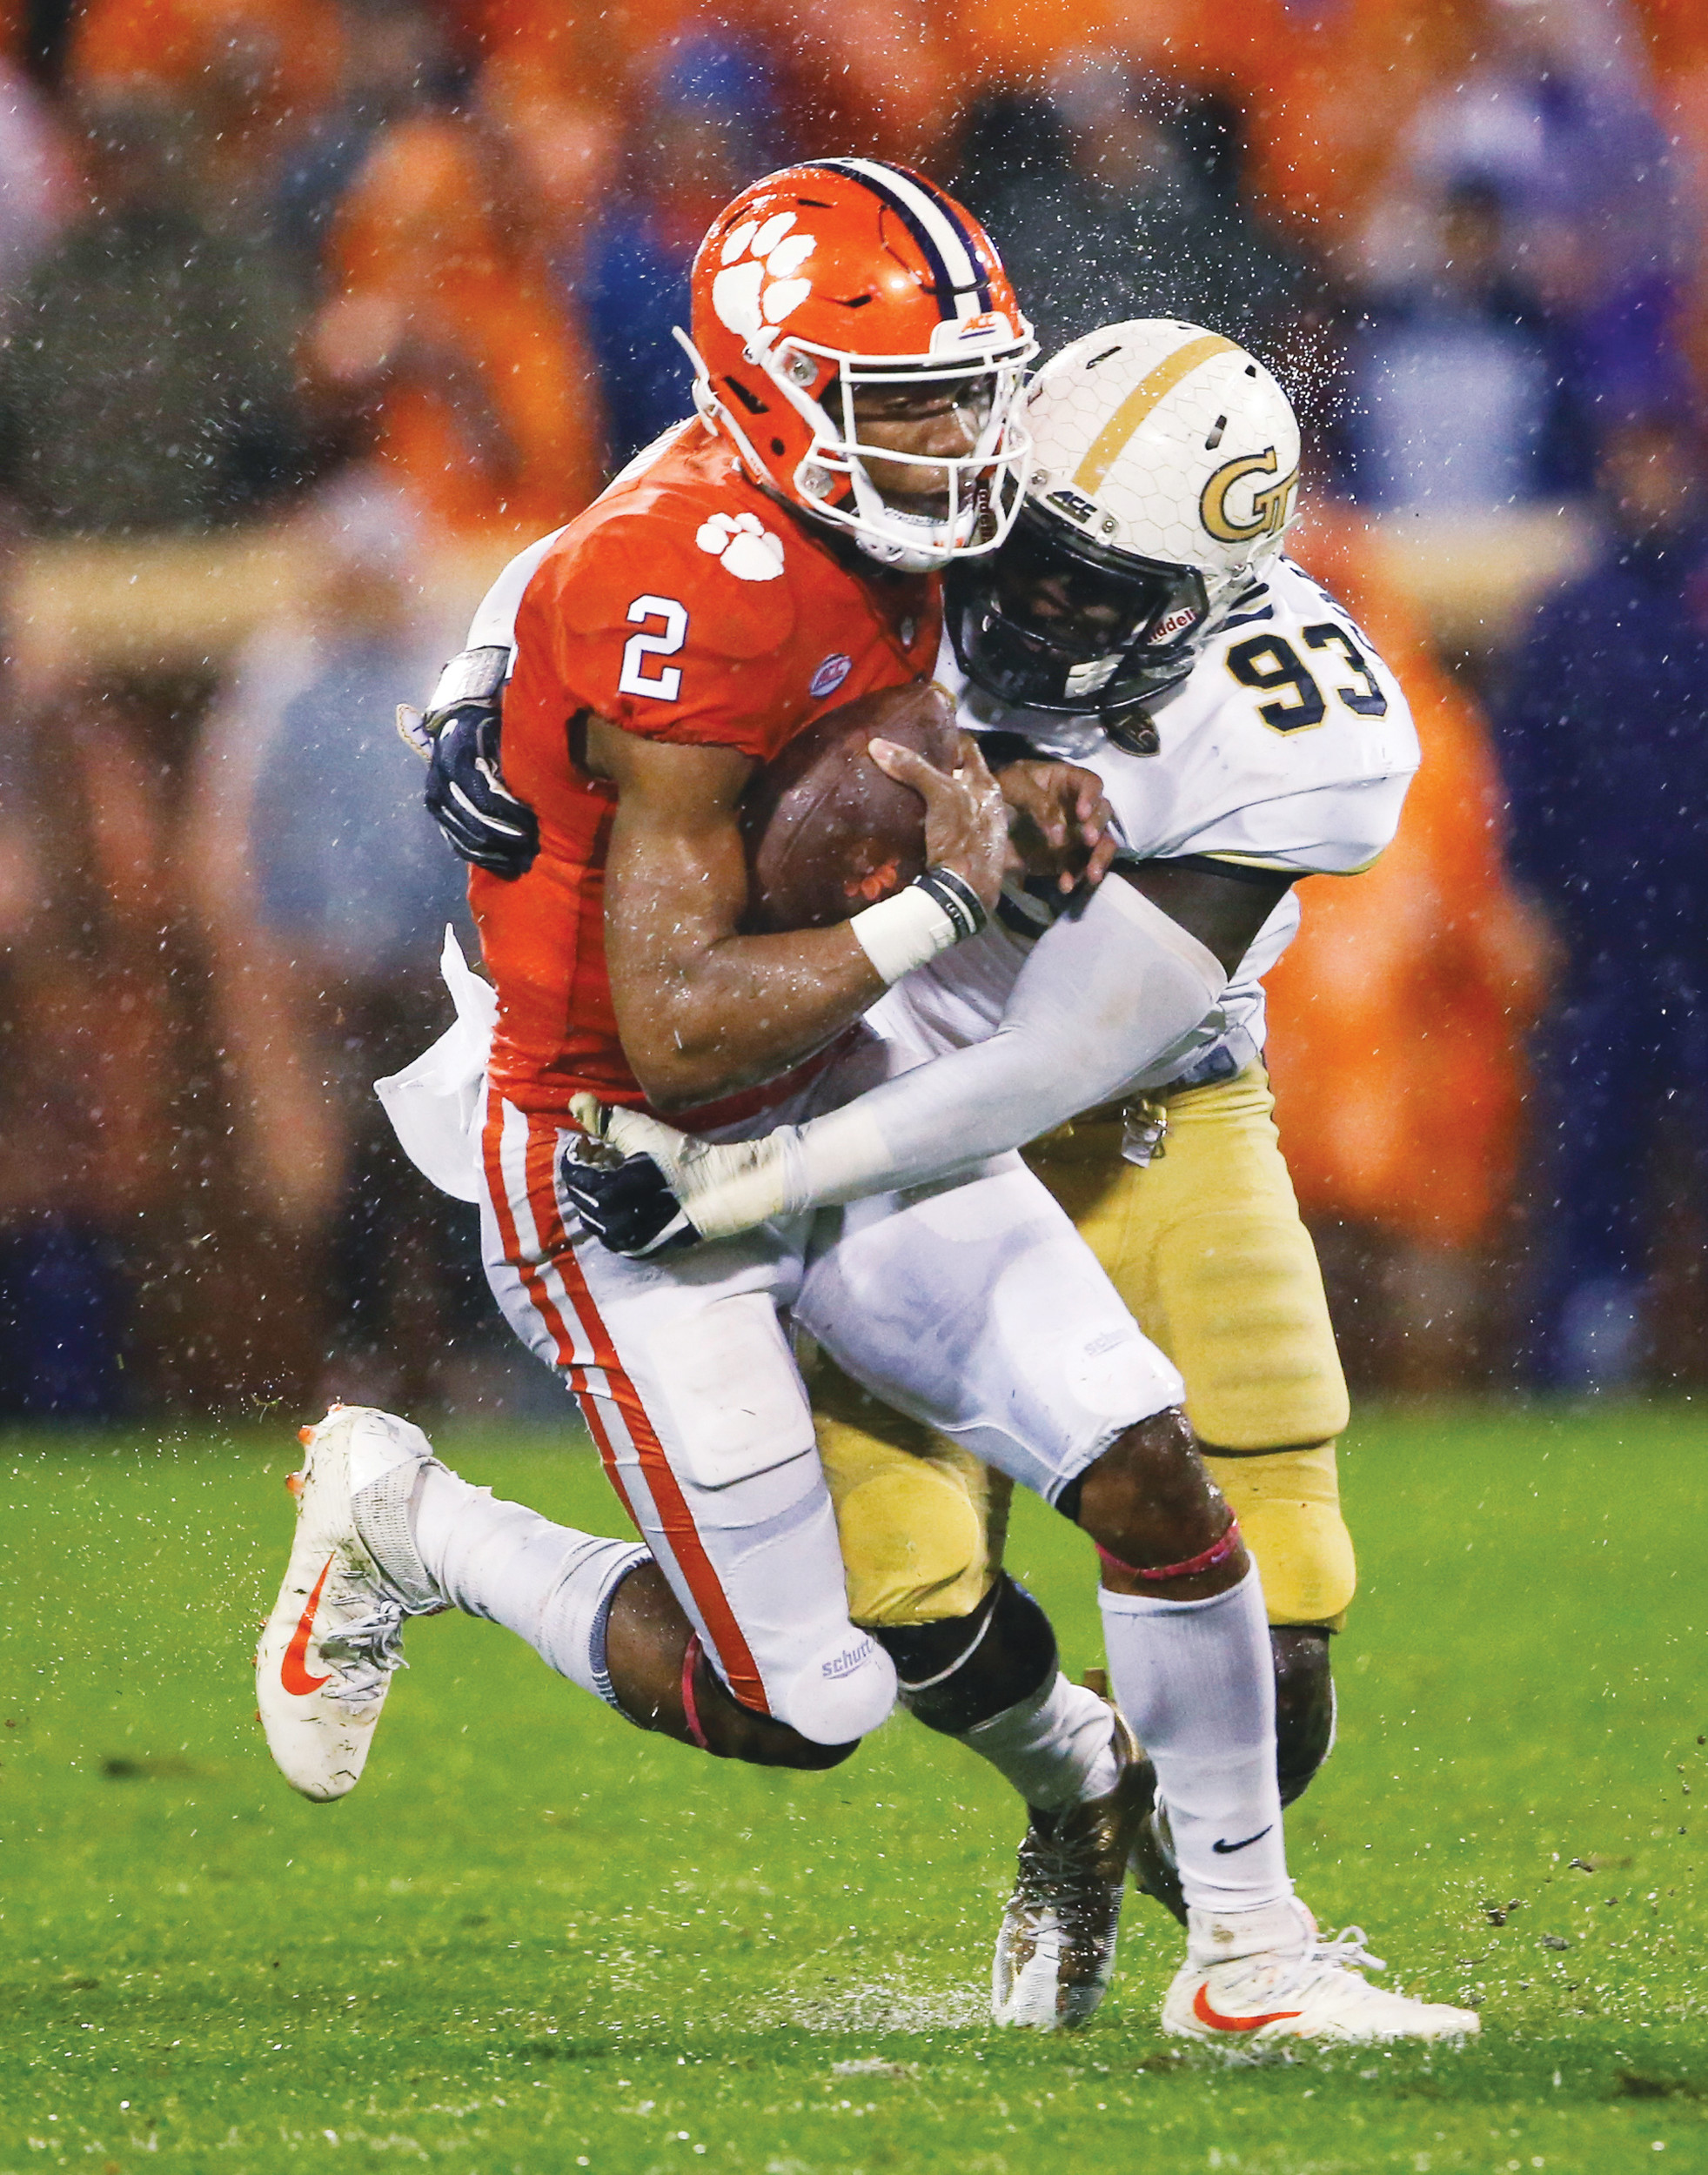 THE ASSOCIATED PRESS Clemson quarterback Kelly Bryant (2) is stopped by Georgia Tech defensive lineman Antonio Simmons (93) in the first half of an NCAA college football game Saturday, Oct. 28, 2017, in Clemson, S.C. (AP Photo/John Bazemore)